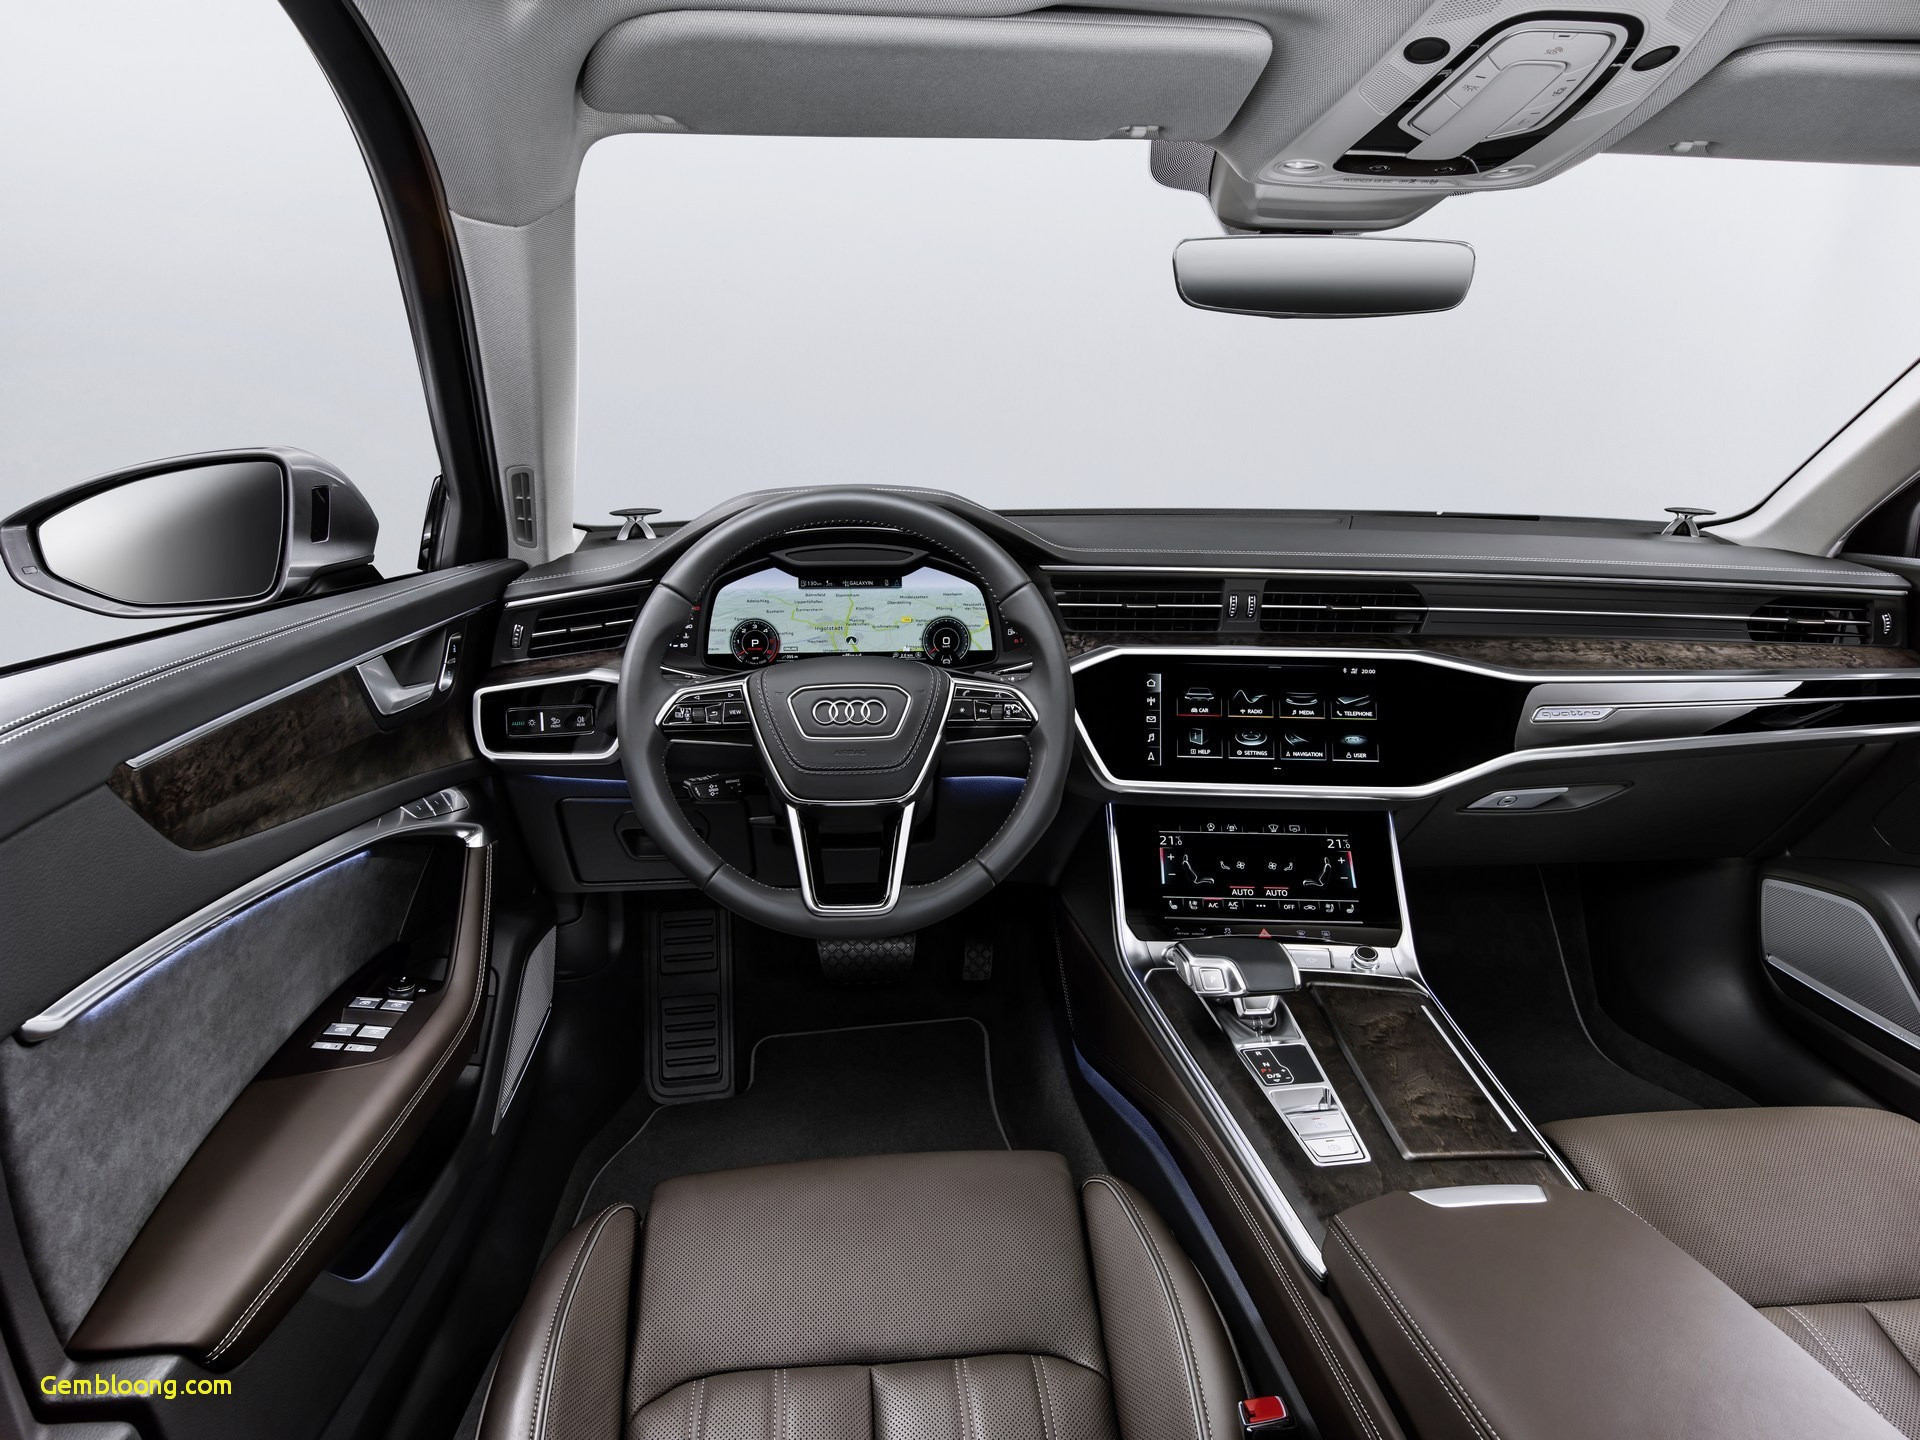 51 All New 2020 Chevy Impala Ss Ltz Interior